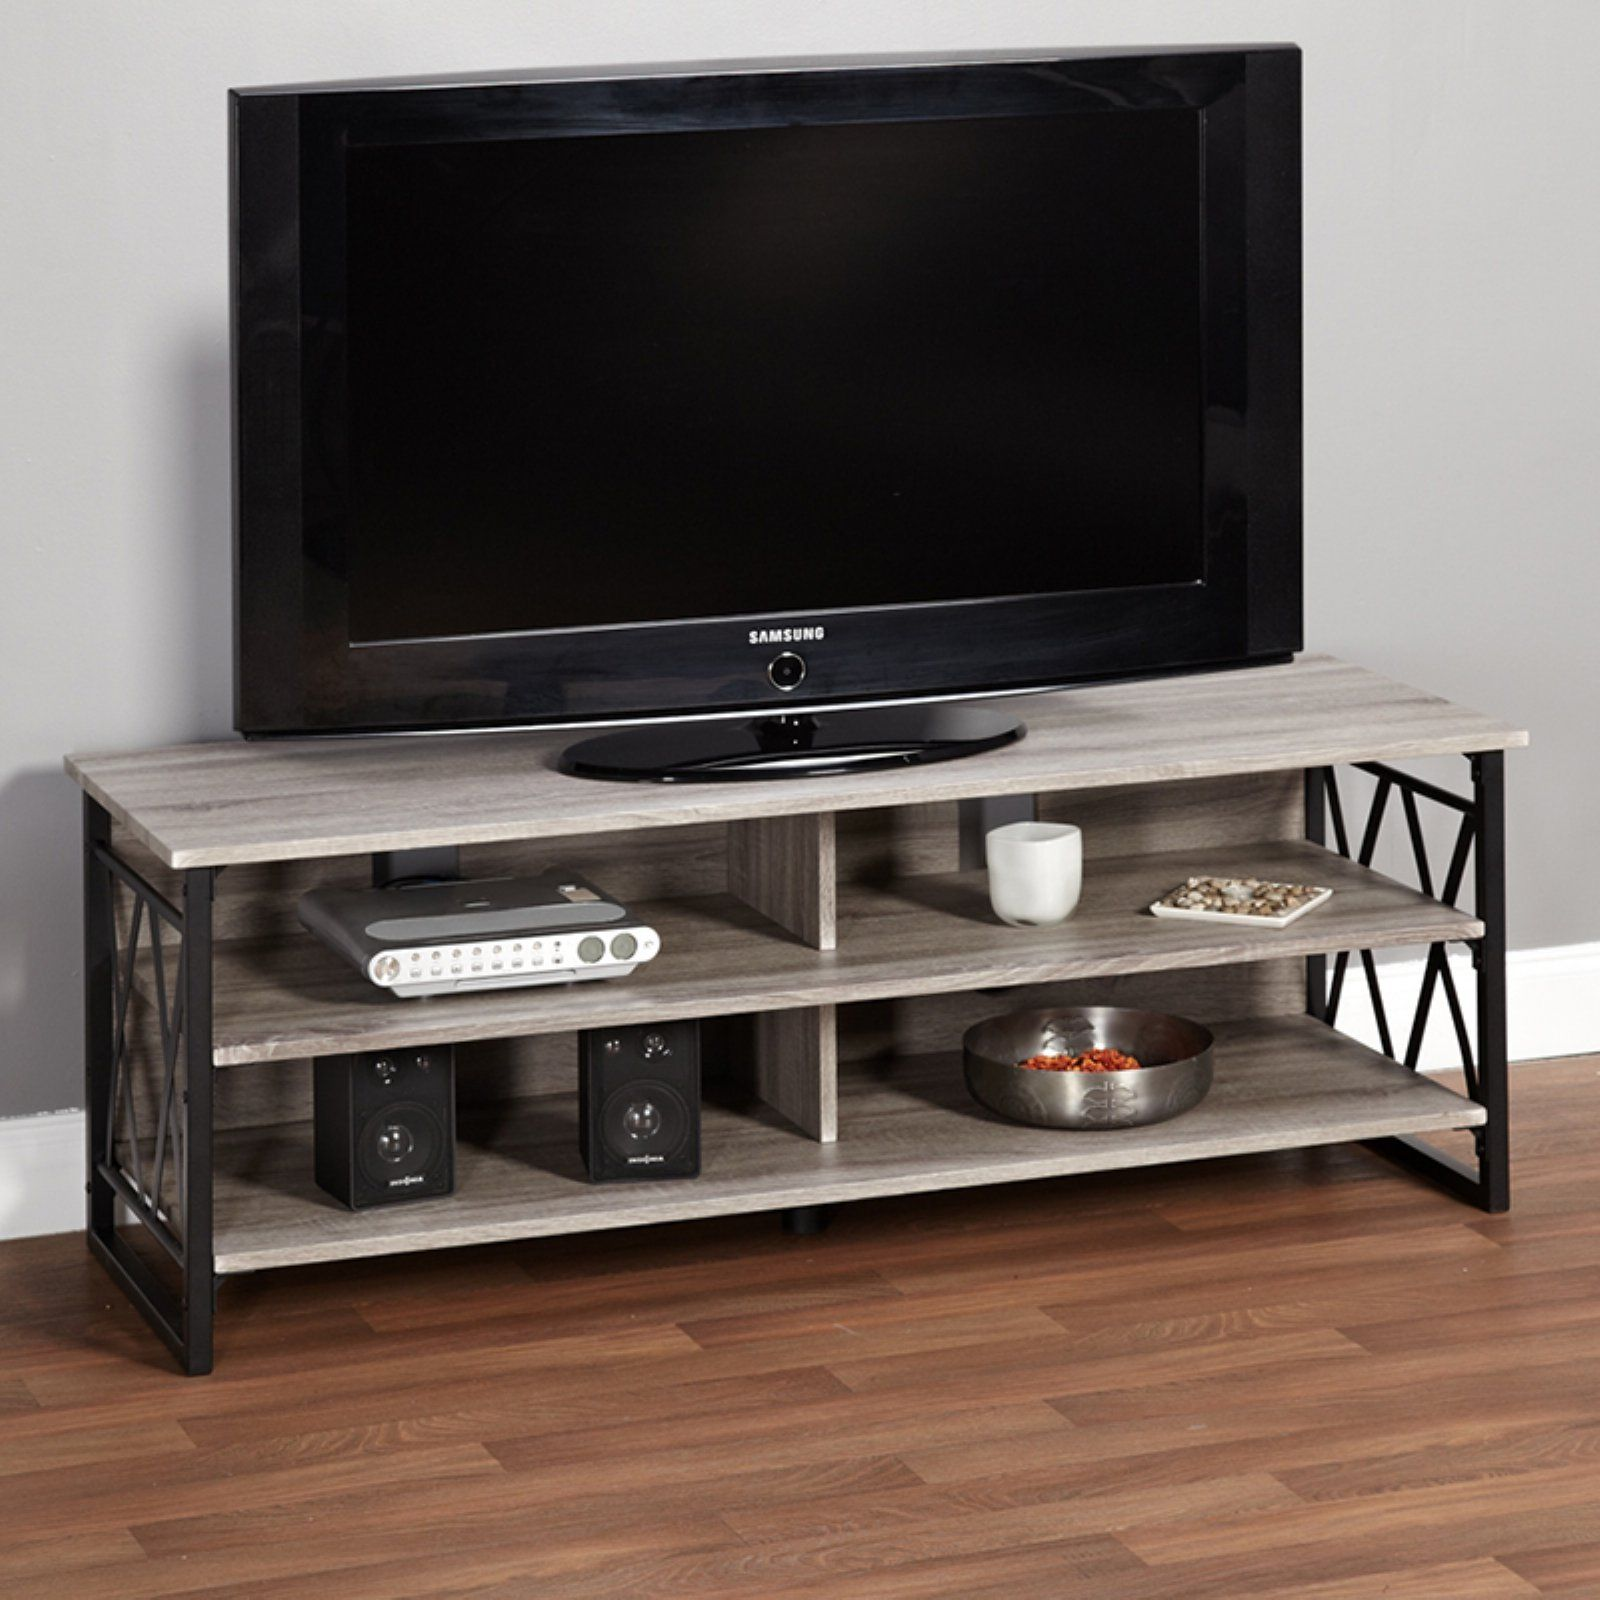 Target Marketing Systems Seneca Tv Stand 60 Inch Tv Stand